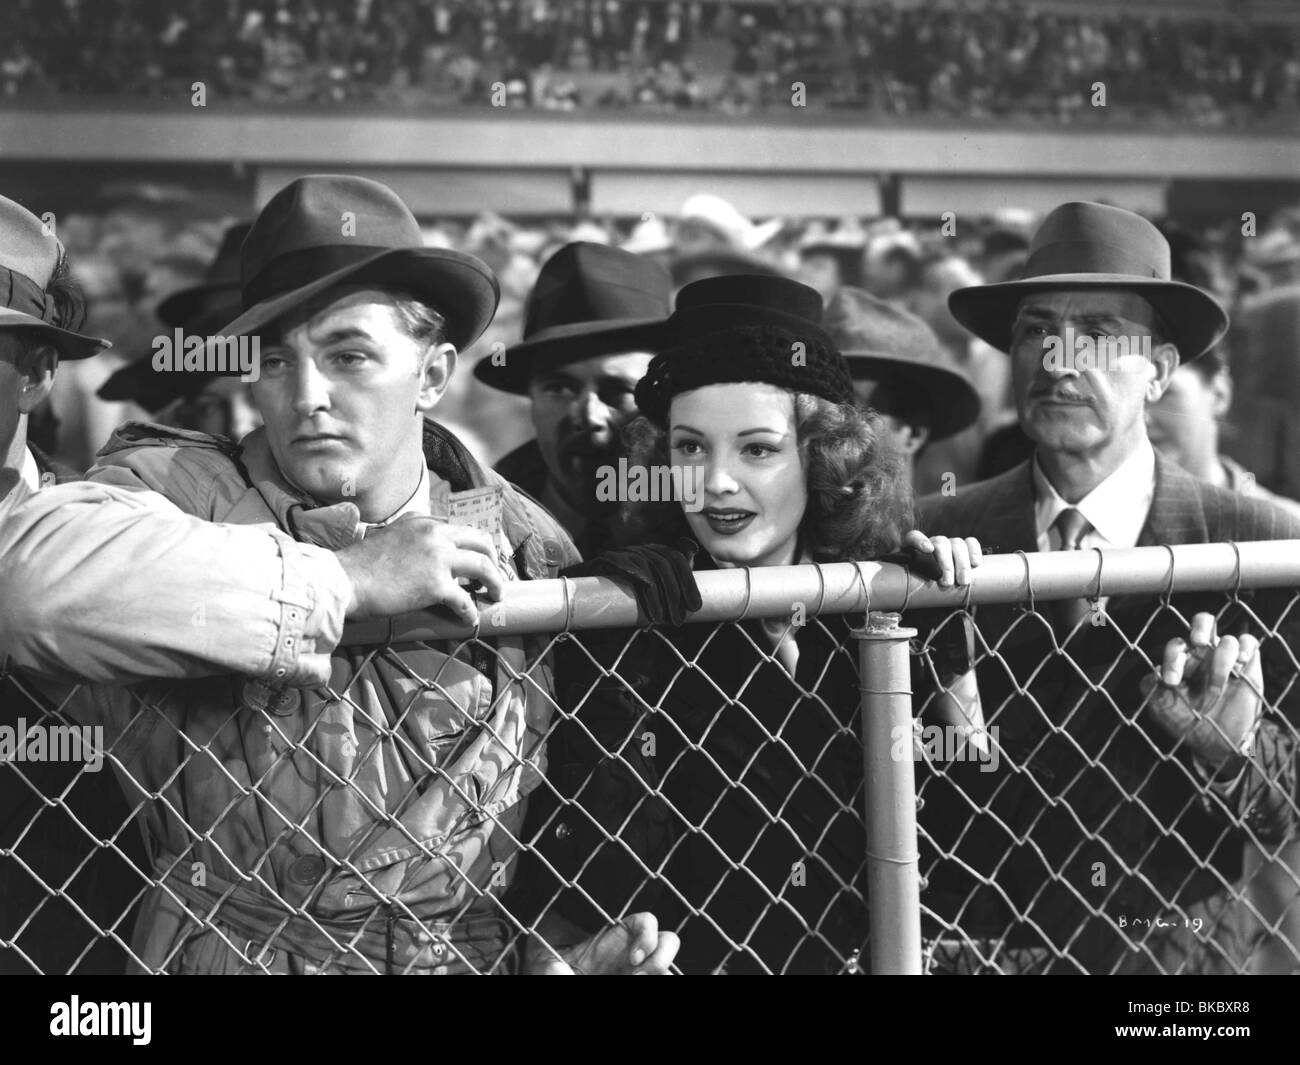 OUT OF THE PAST (1947) BUILD MY GALLOWS HIGH (ALT) ROBERT MITCHUM OOTP 002P - Stock Image